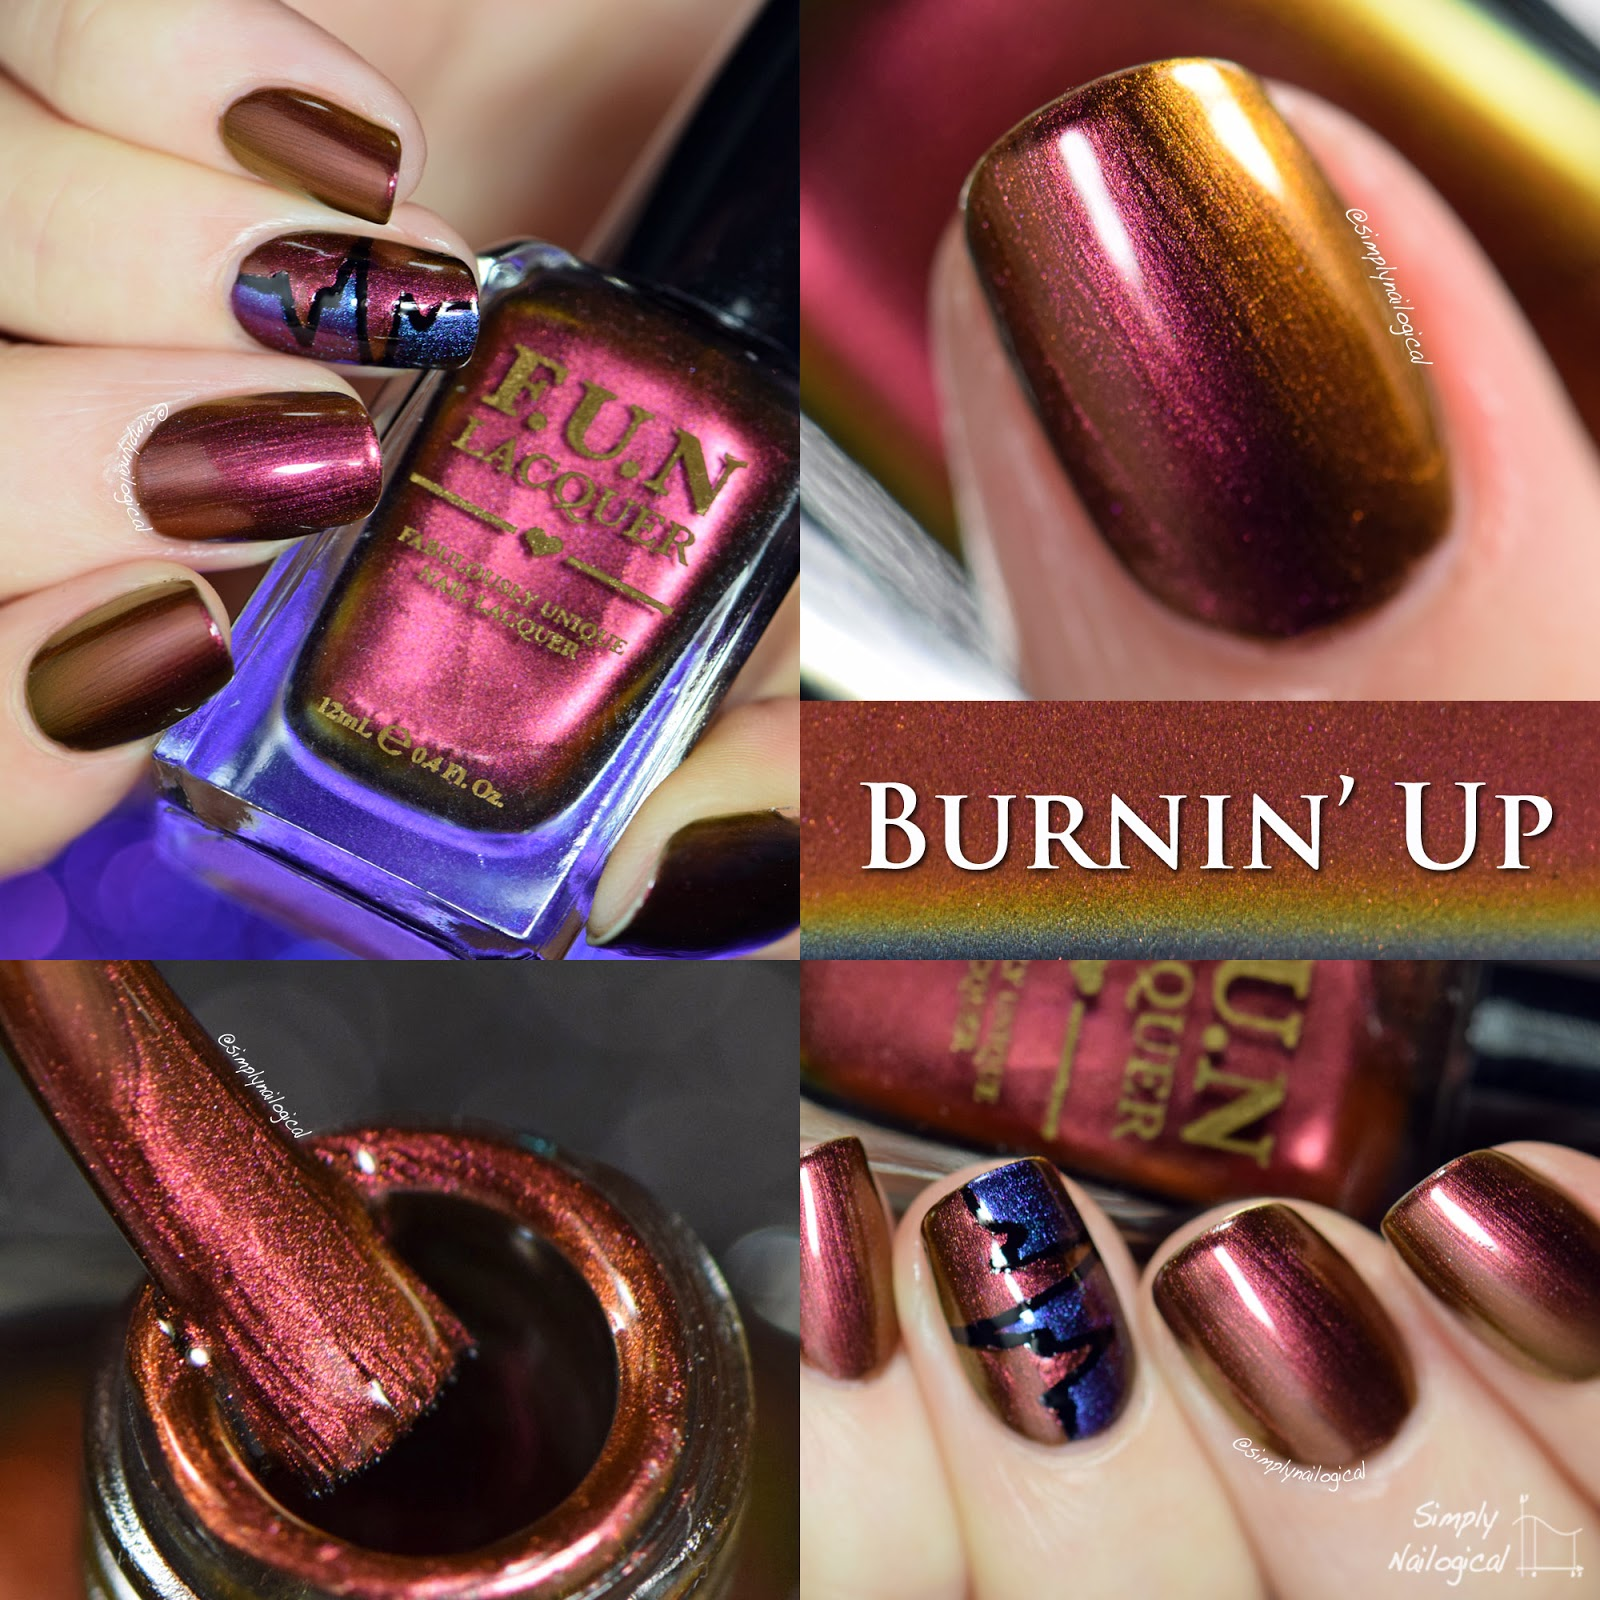 FUN Lacquer Burnin' Up swatch